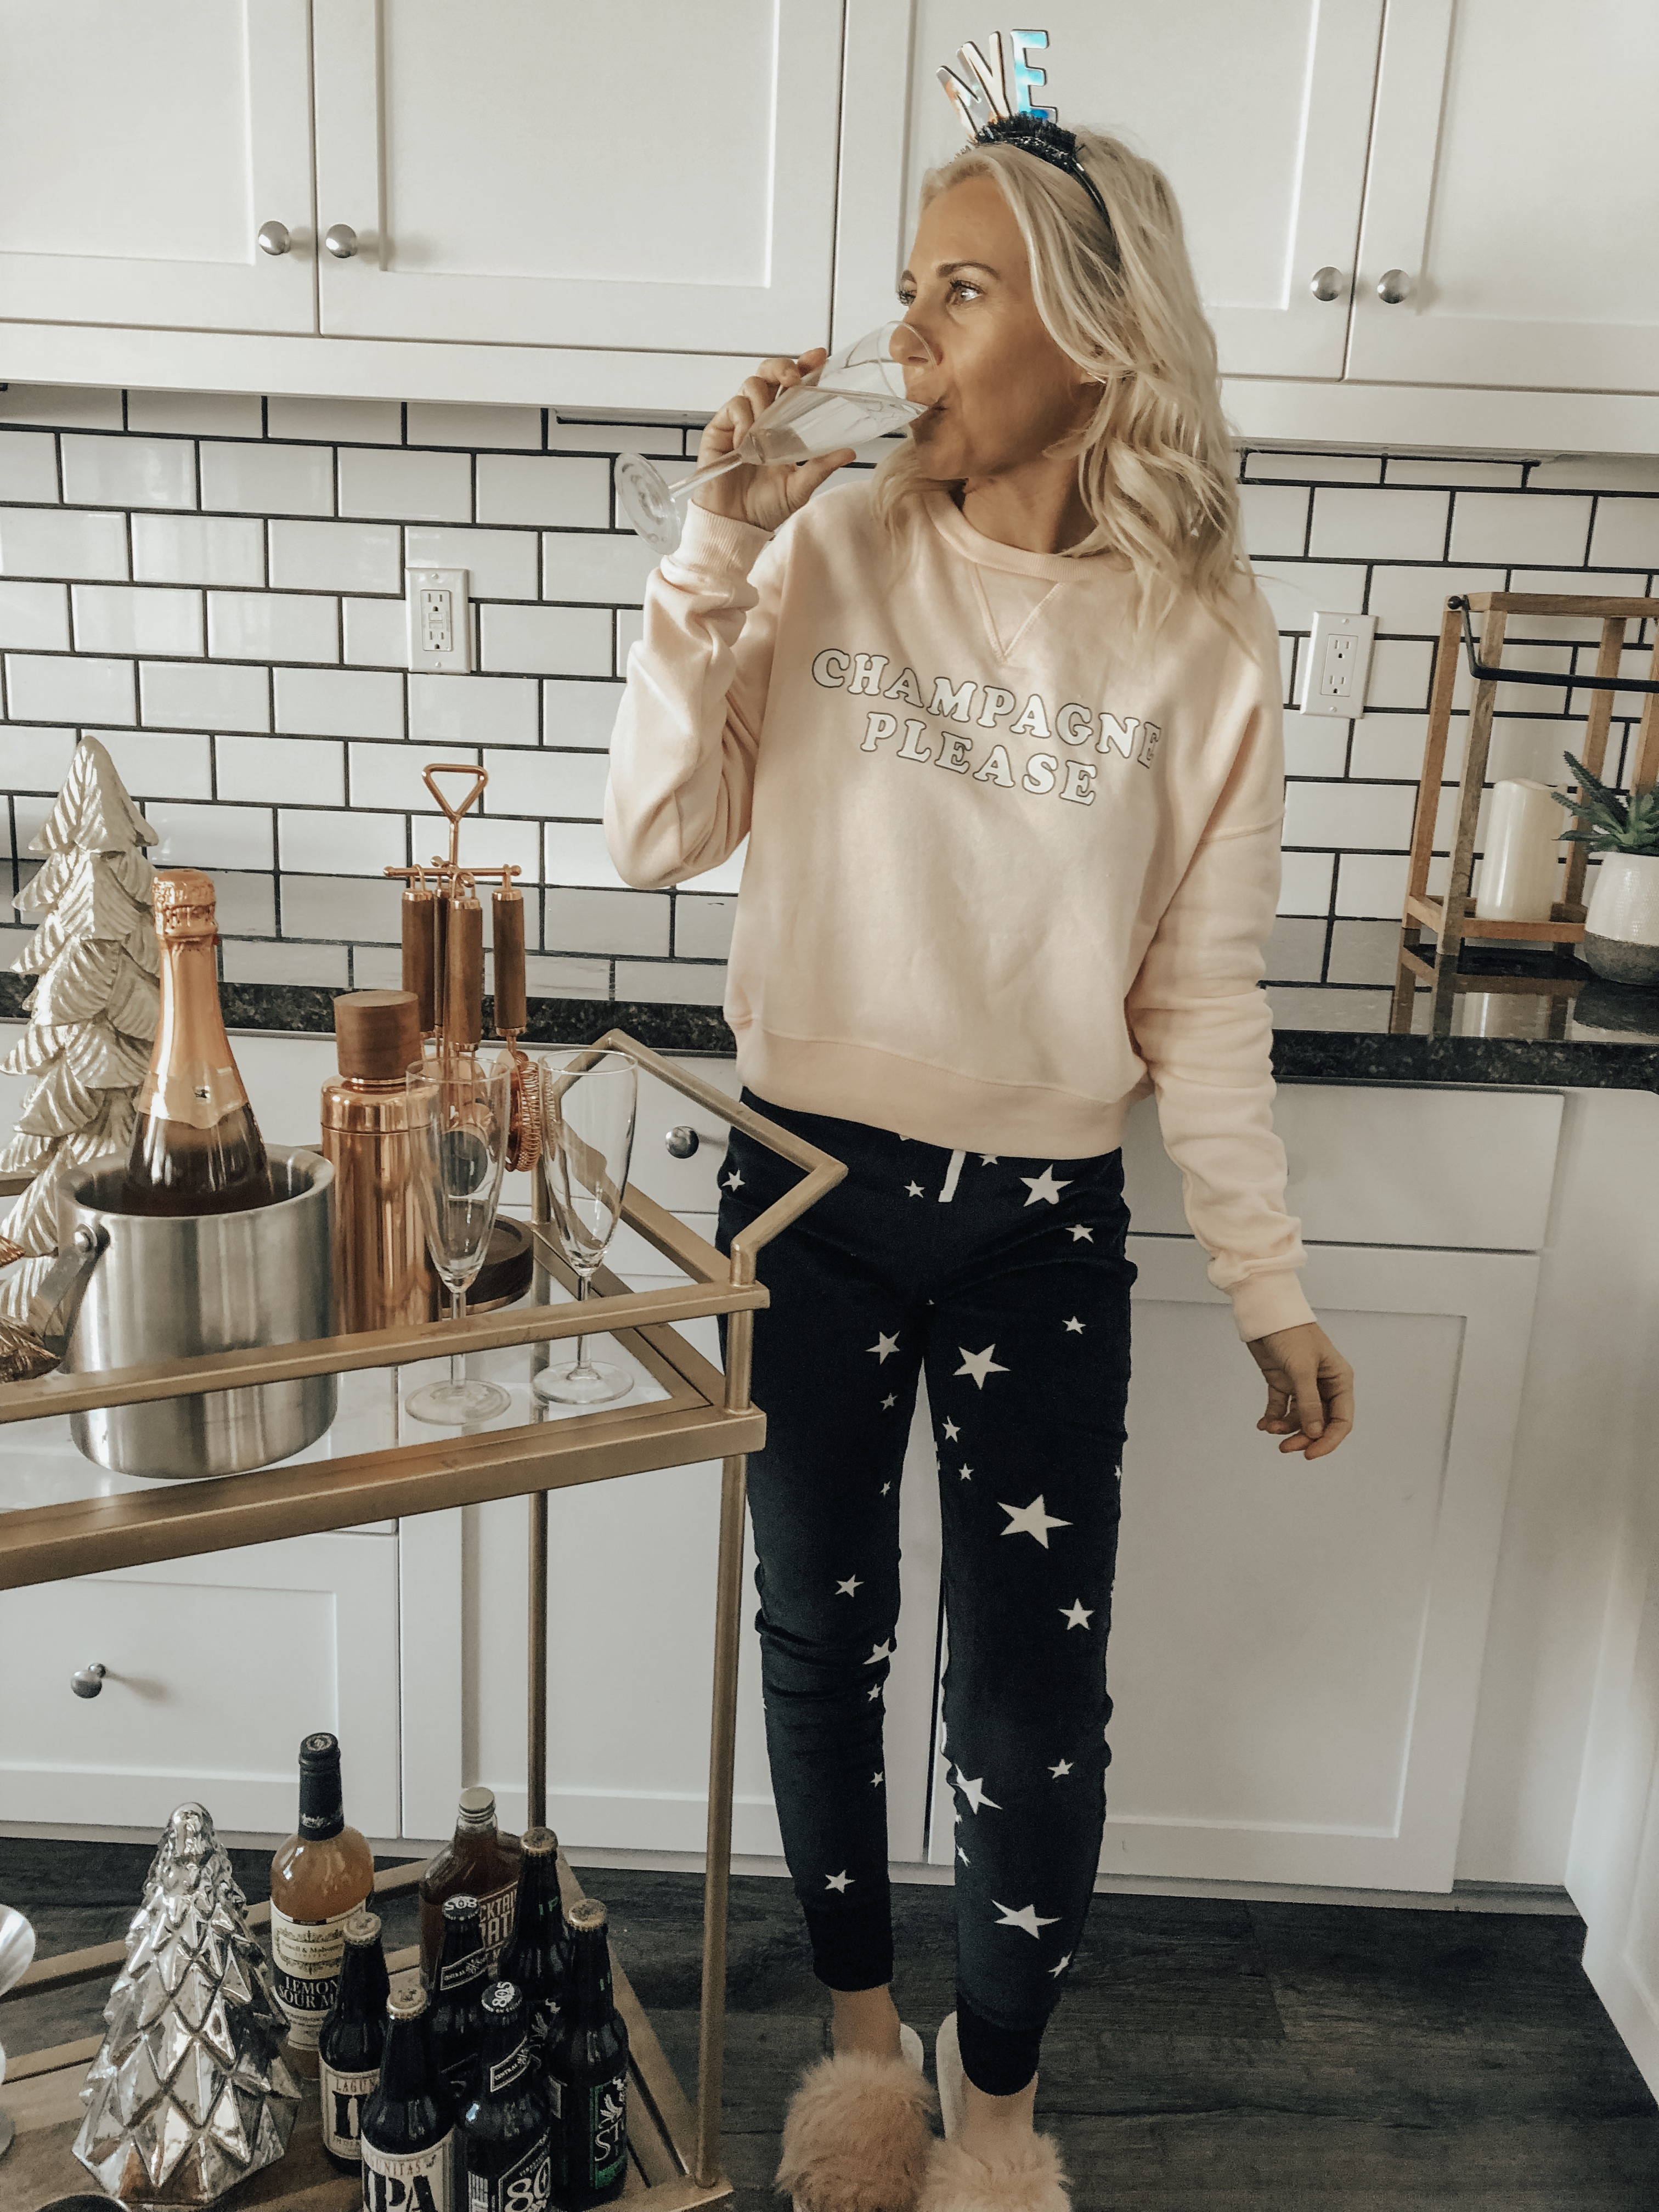 A COZY & CASUAL NYE- Jaclyn De Leon Style + New Years 2019 + casual sweatshirt + star print jogger pants + champagne please + target style + bar cart + party supplies + cozy home + party planning + lounging at home + countdown to New Years